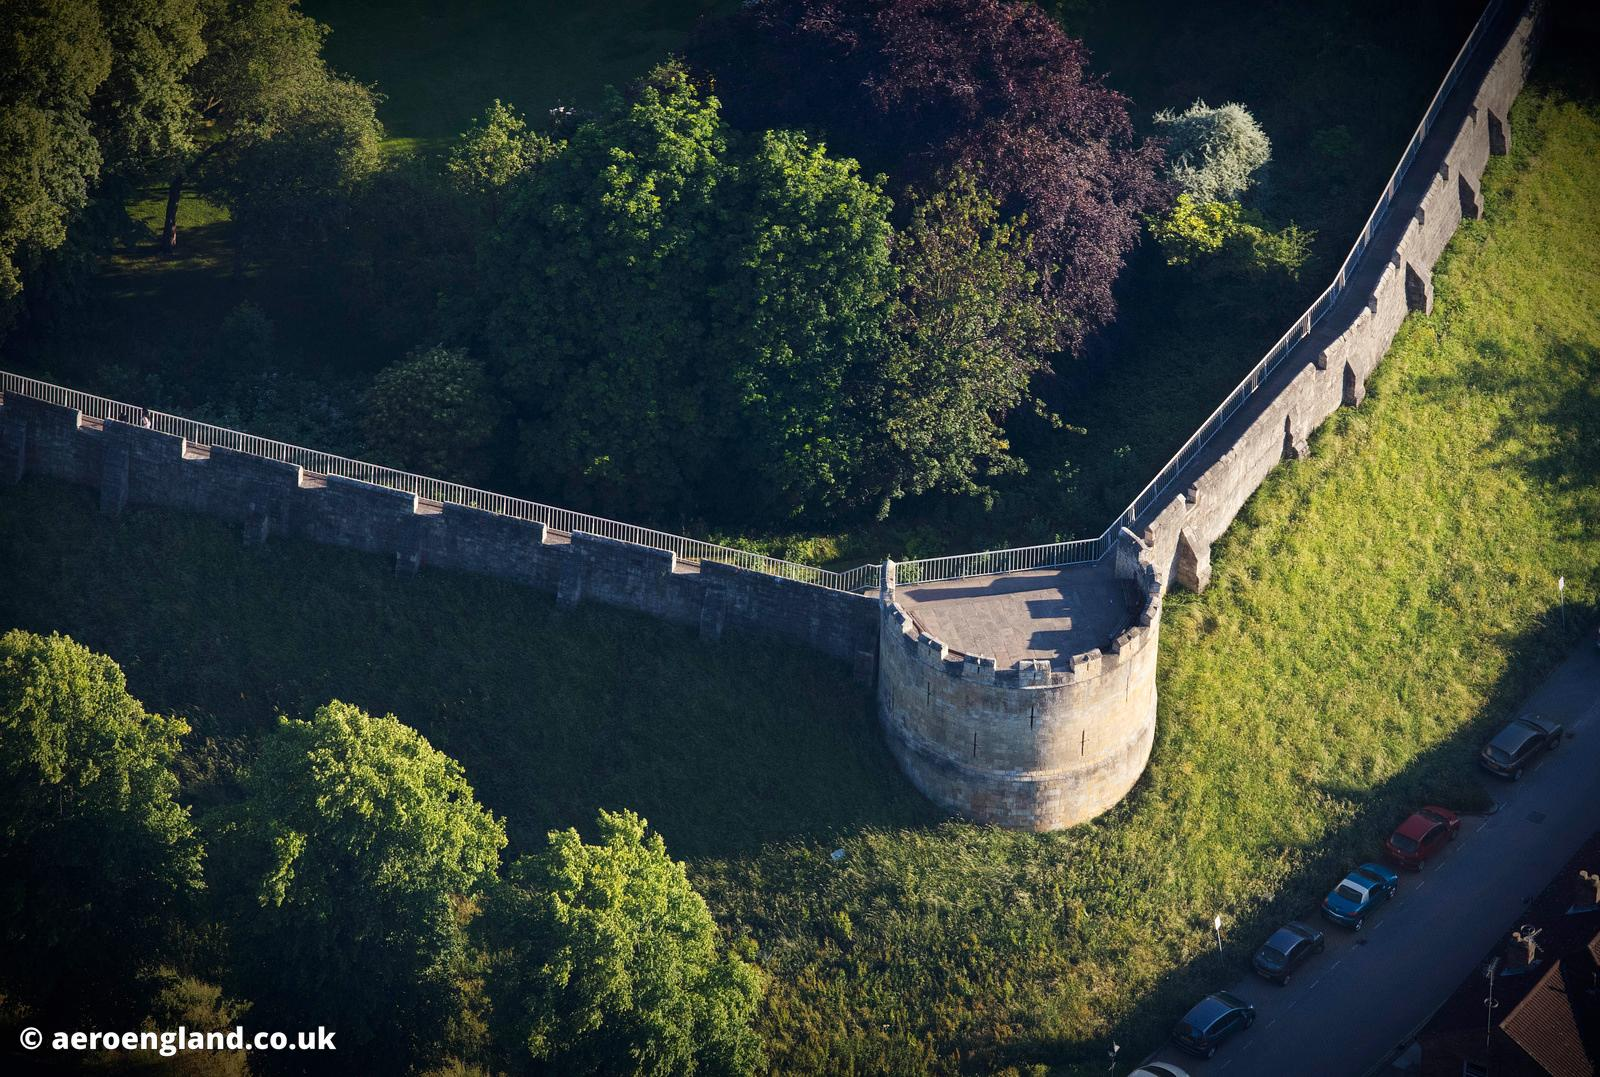 Robin Hood Tower on the York City Walls  from the air